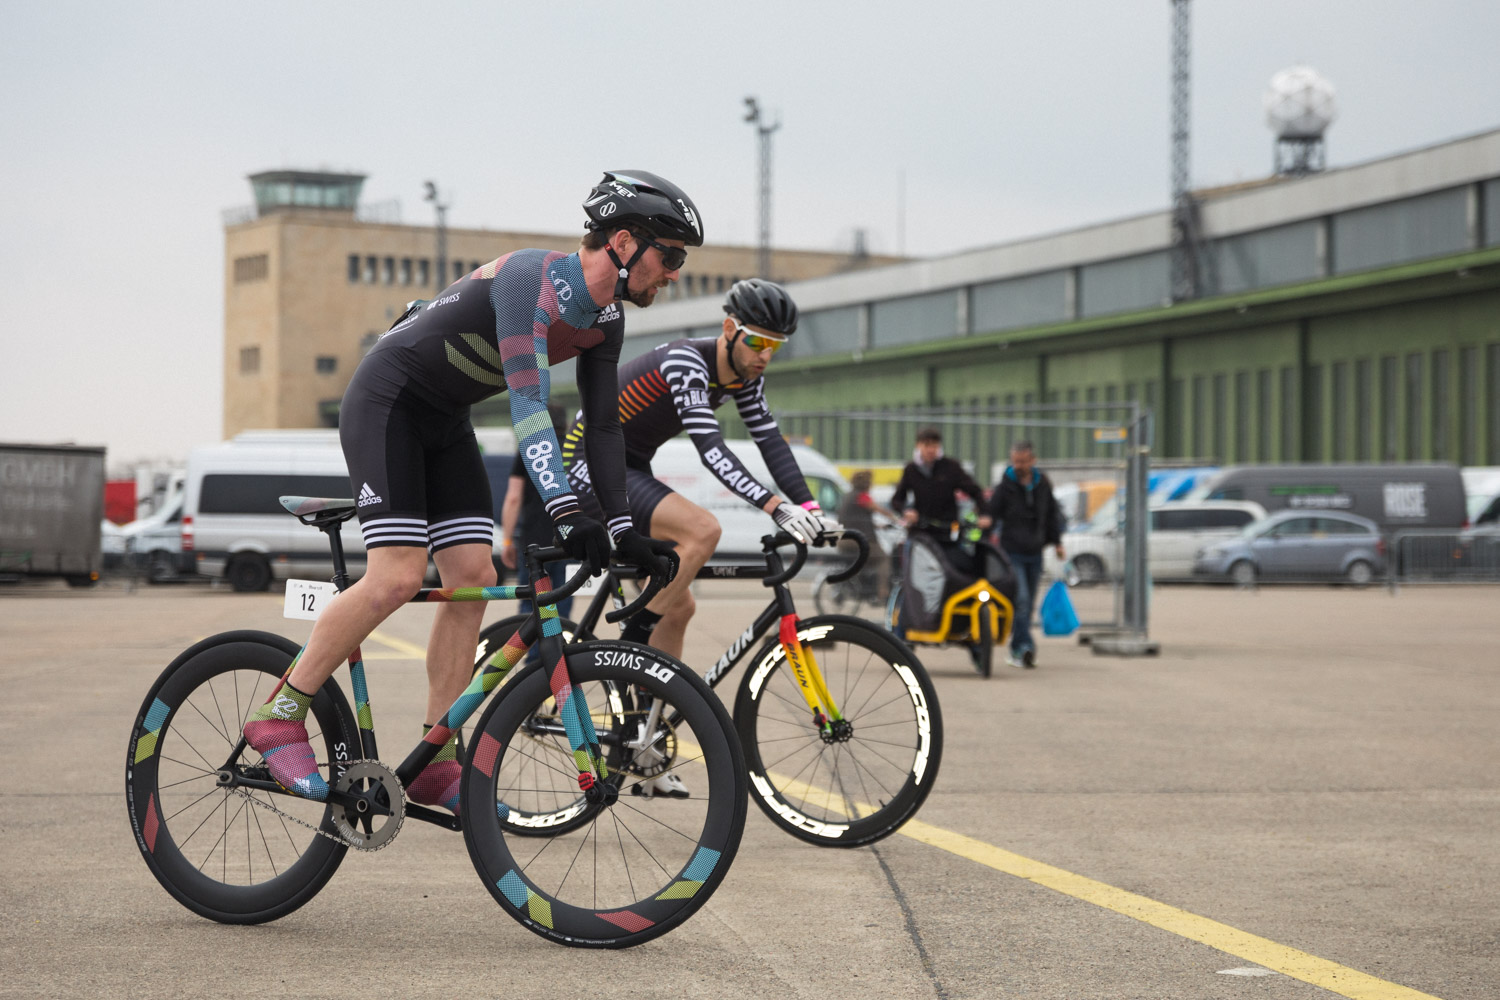 8brcrit 8bar team fixed gear crit 8 - Schnell, schneller, 8bar crit 2018 - der Rennbericht!